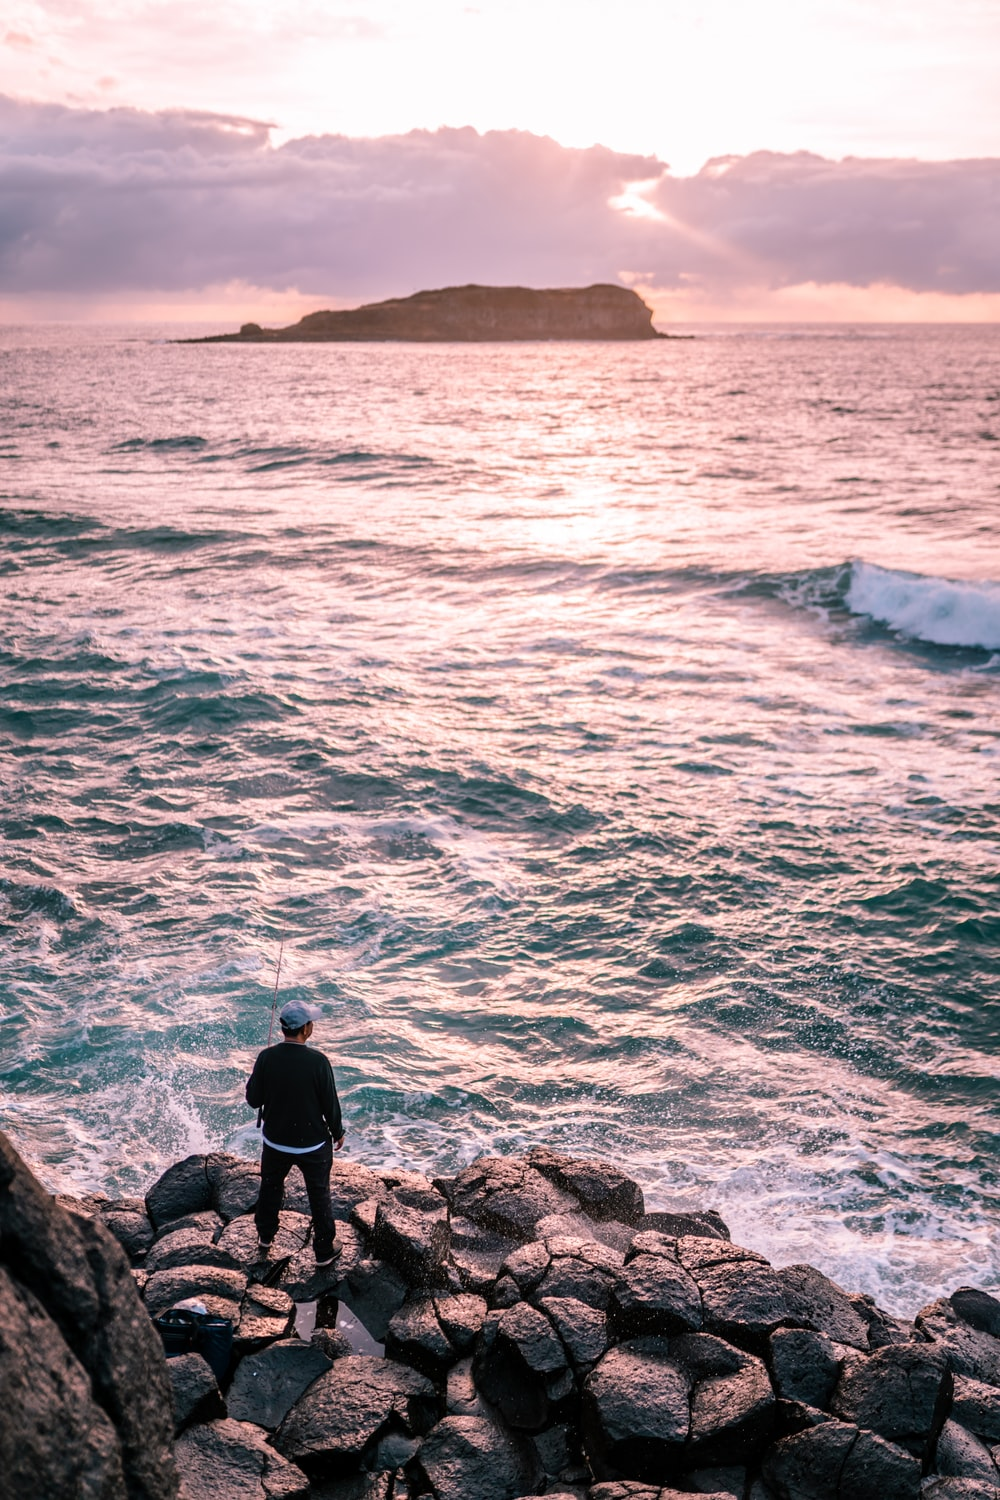 man in black jacket standing on rock formation near body of water during daytime